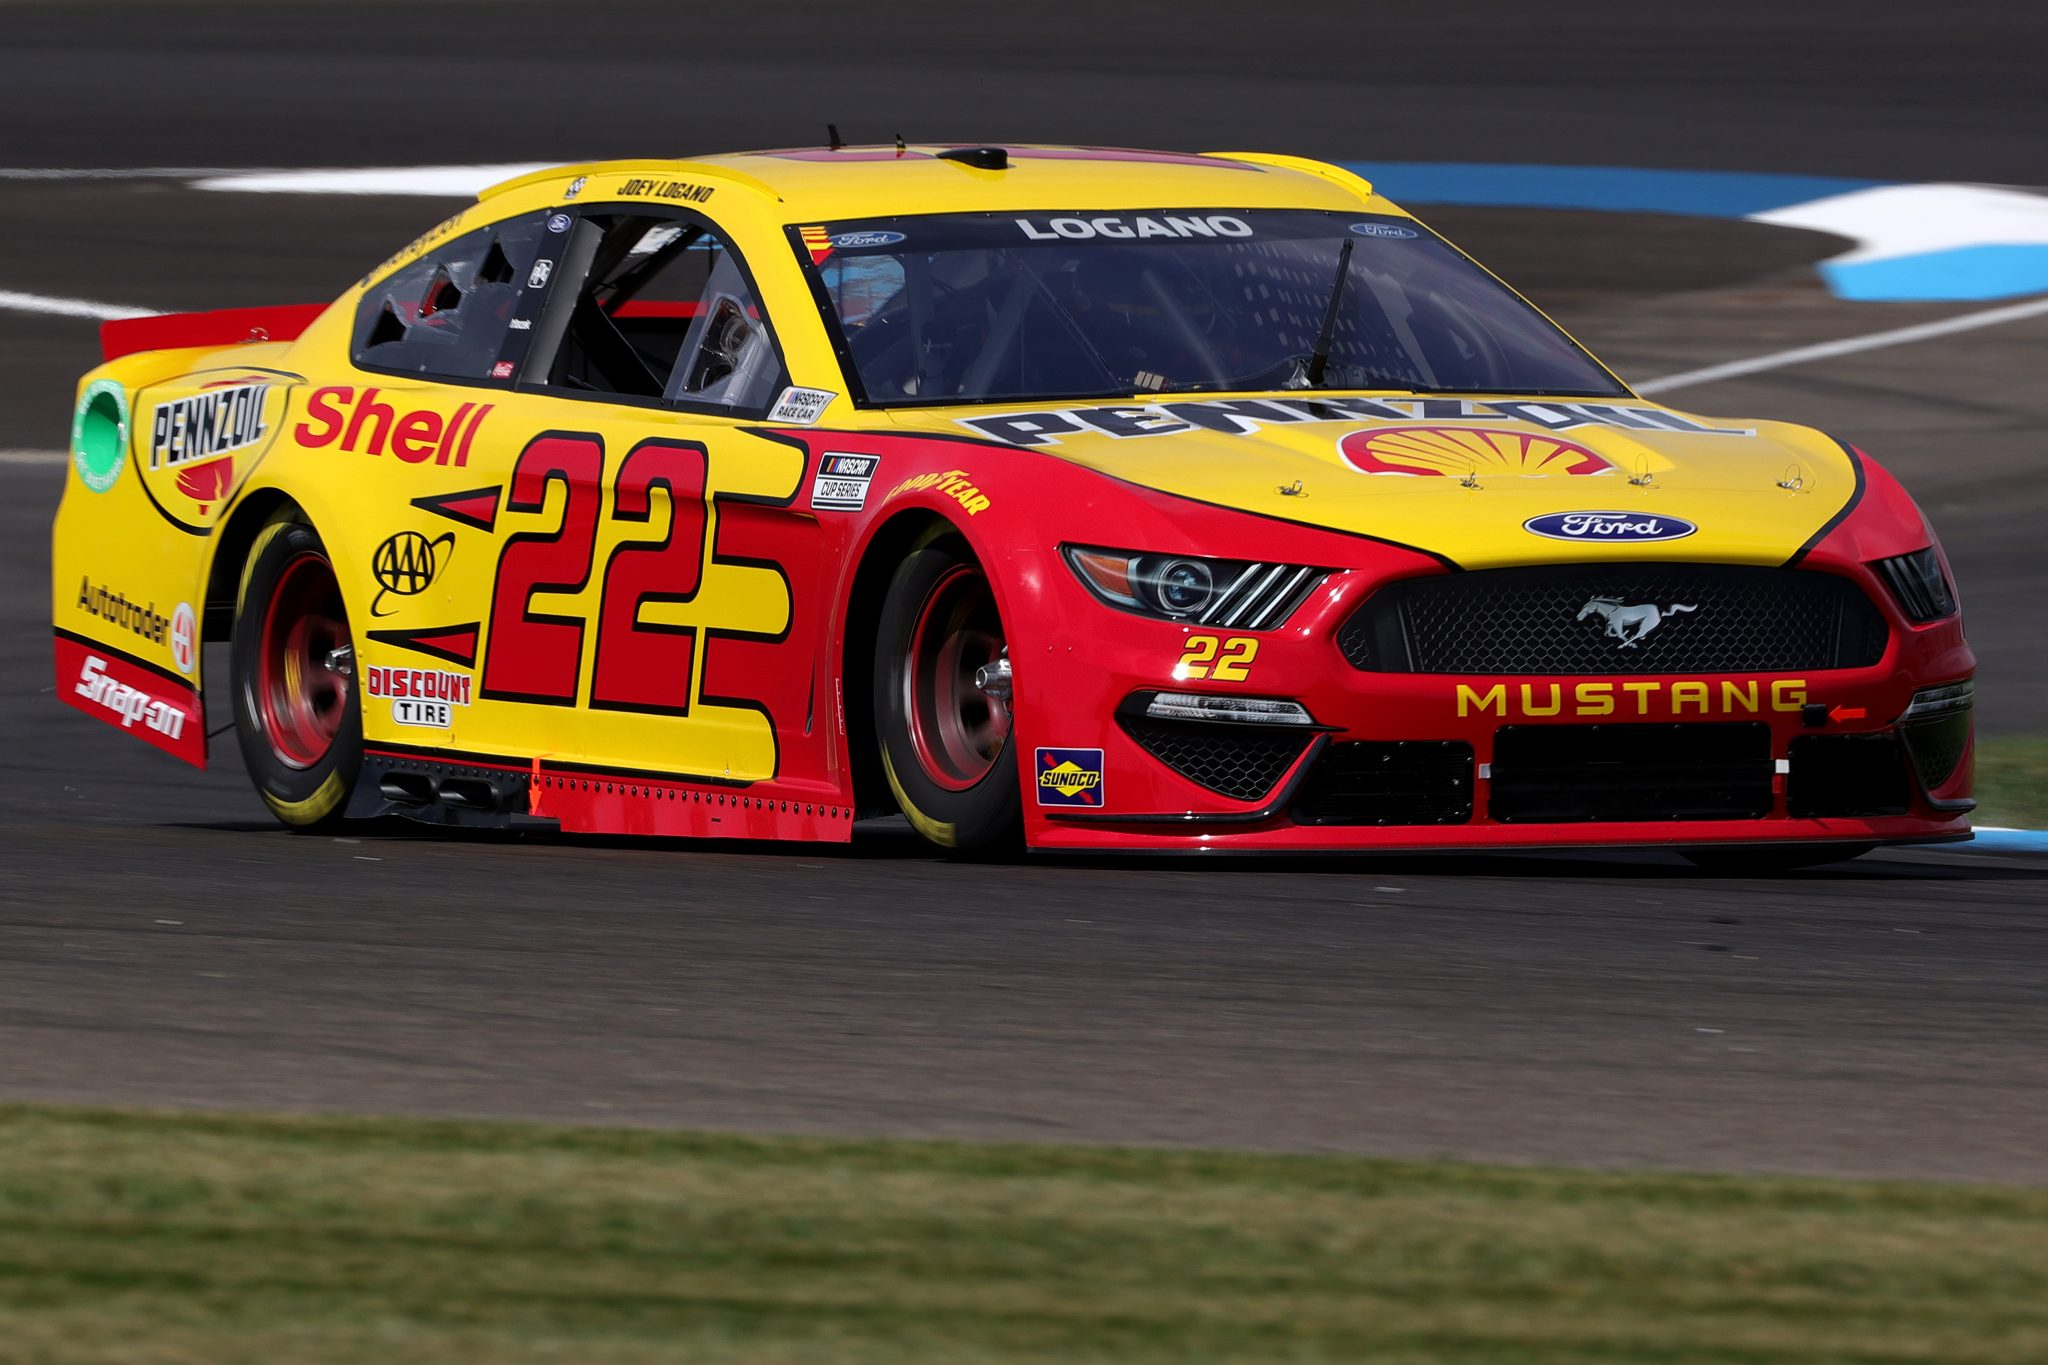 INDIANAPOLIS, INDIANA - AUGUST 14: Joey Logano, driver of the #22 Shell Pennzoil Ford, drives during practice for the NASCAR Cup Series Verizon 200 at the Brickyard at Indianapolis Motor Speedway on August 14, 2021 in Indianapolis, Indiana. (Photo by Stacy Revere/Getty Images)   Getty Images